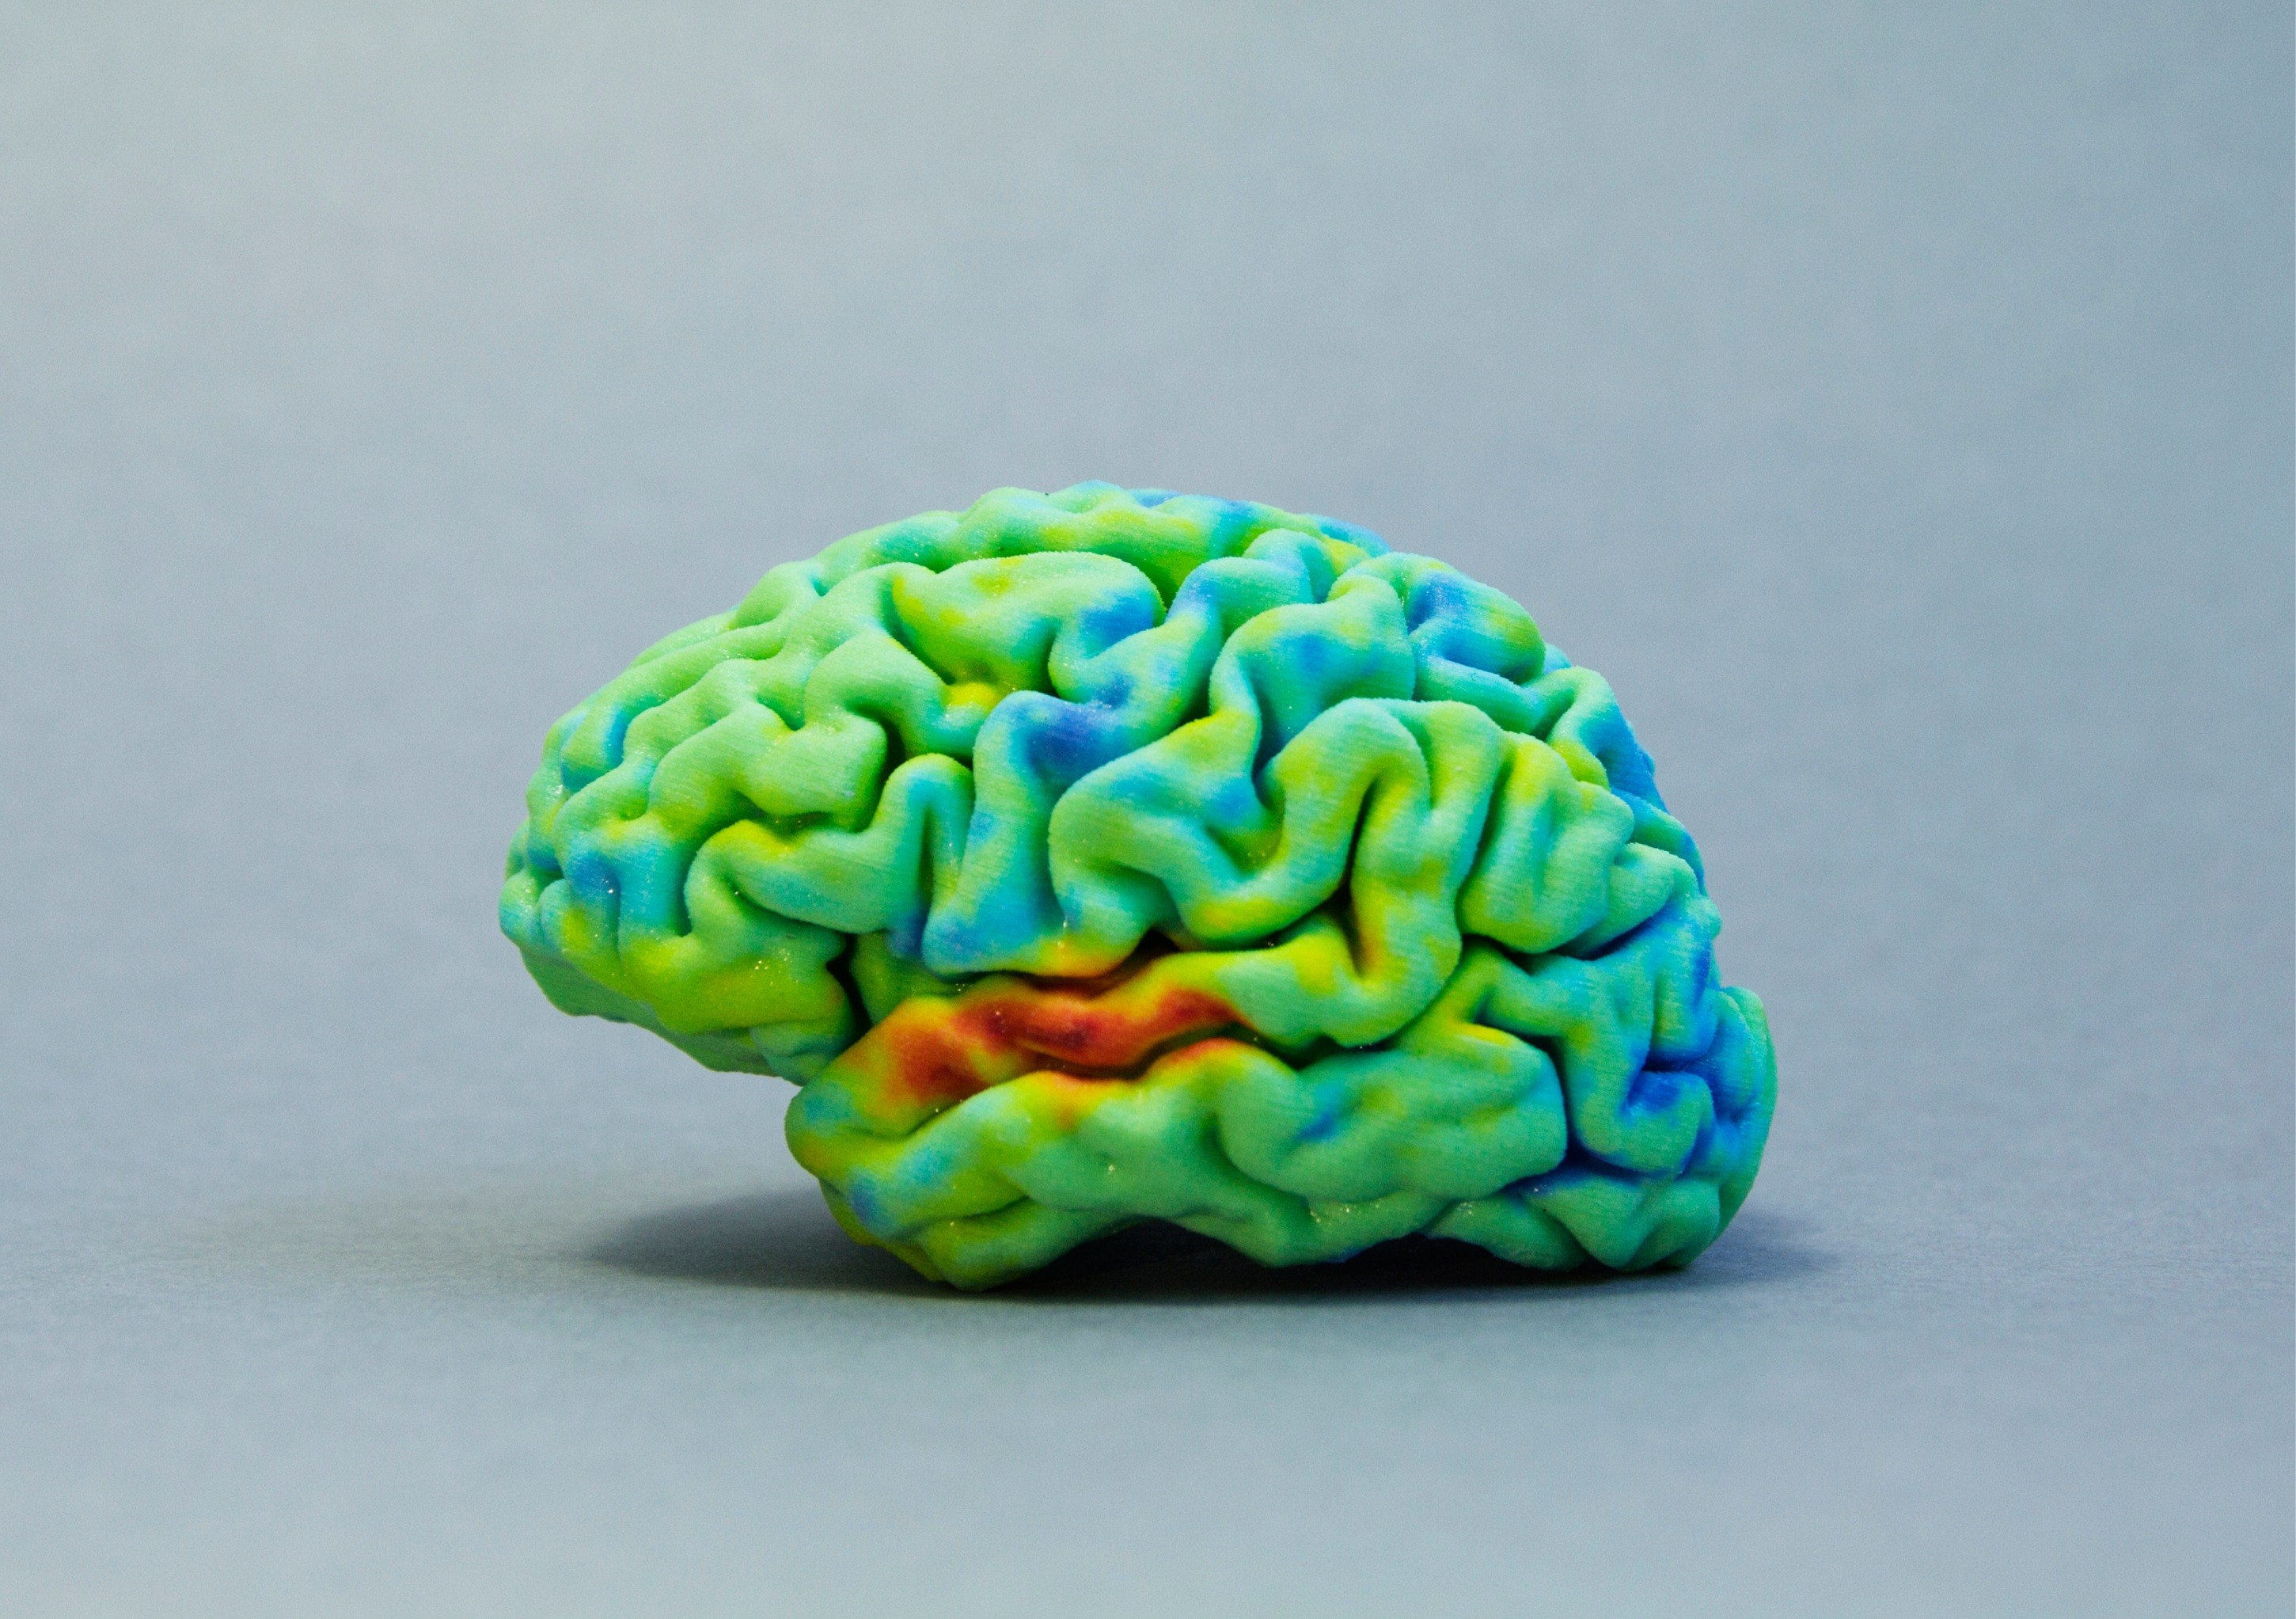 Discover the tutorial on how to 3D print your own brain!